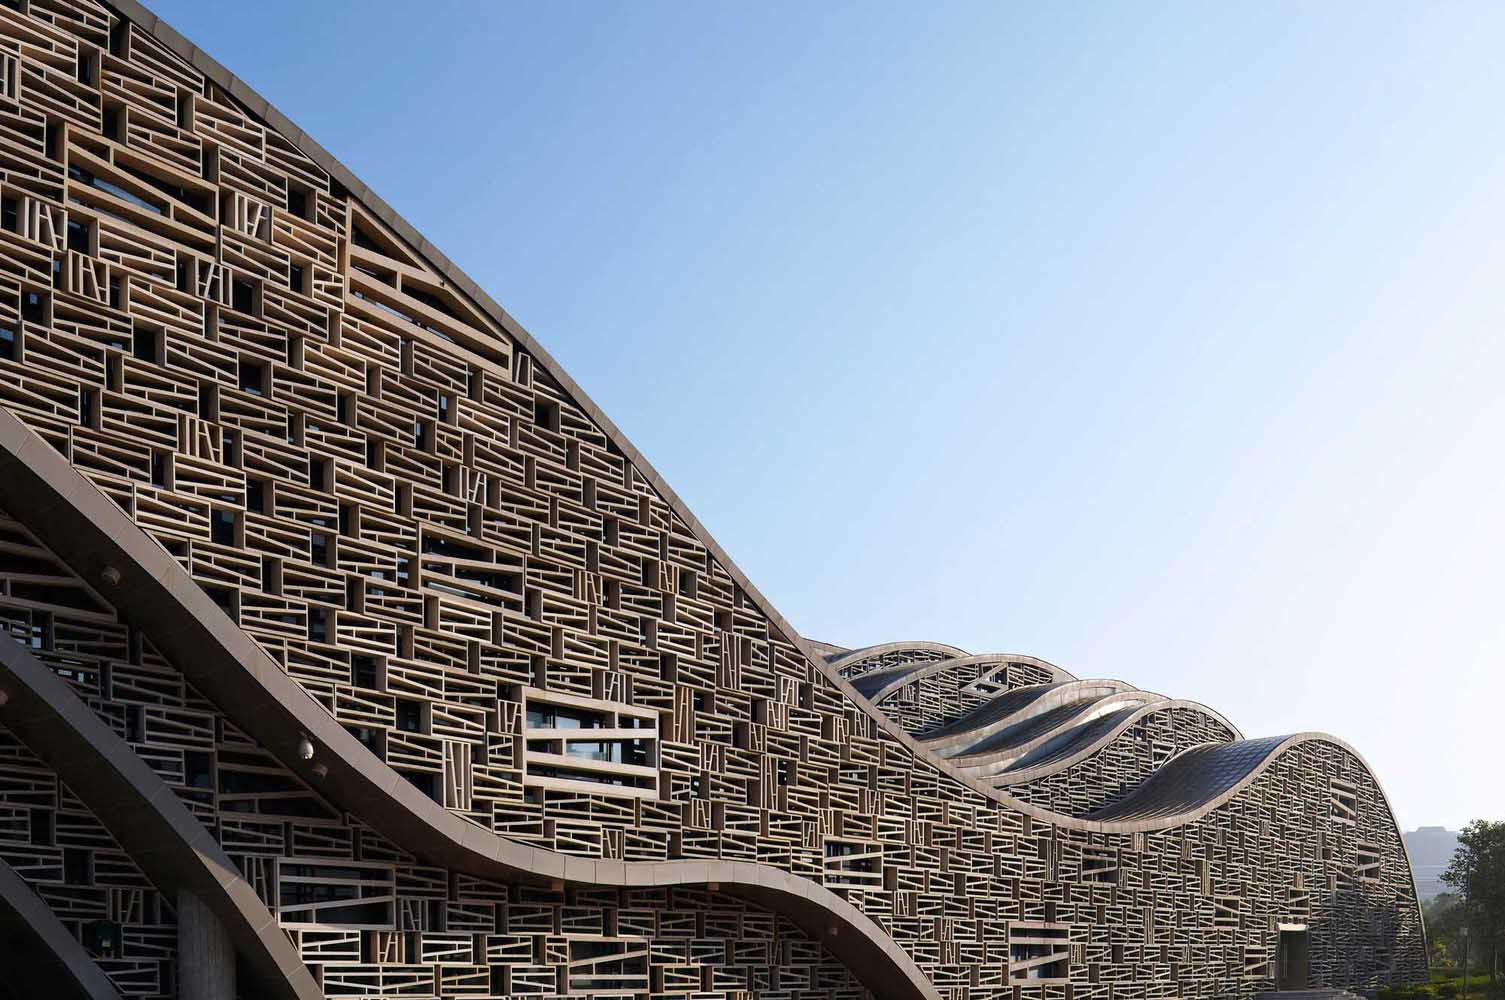 This Week's Most Instagram-Worthy Architecture